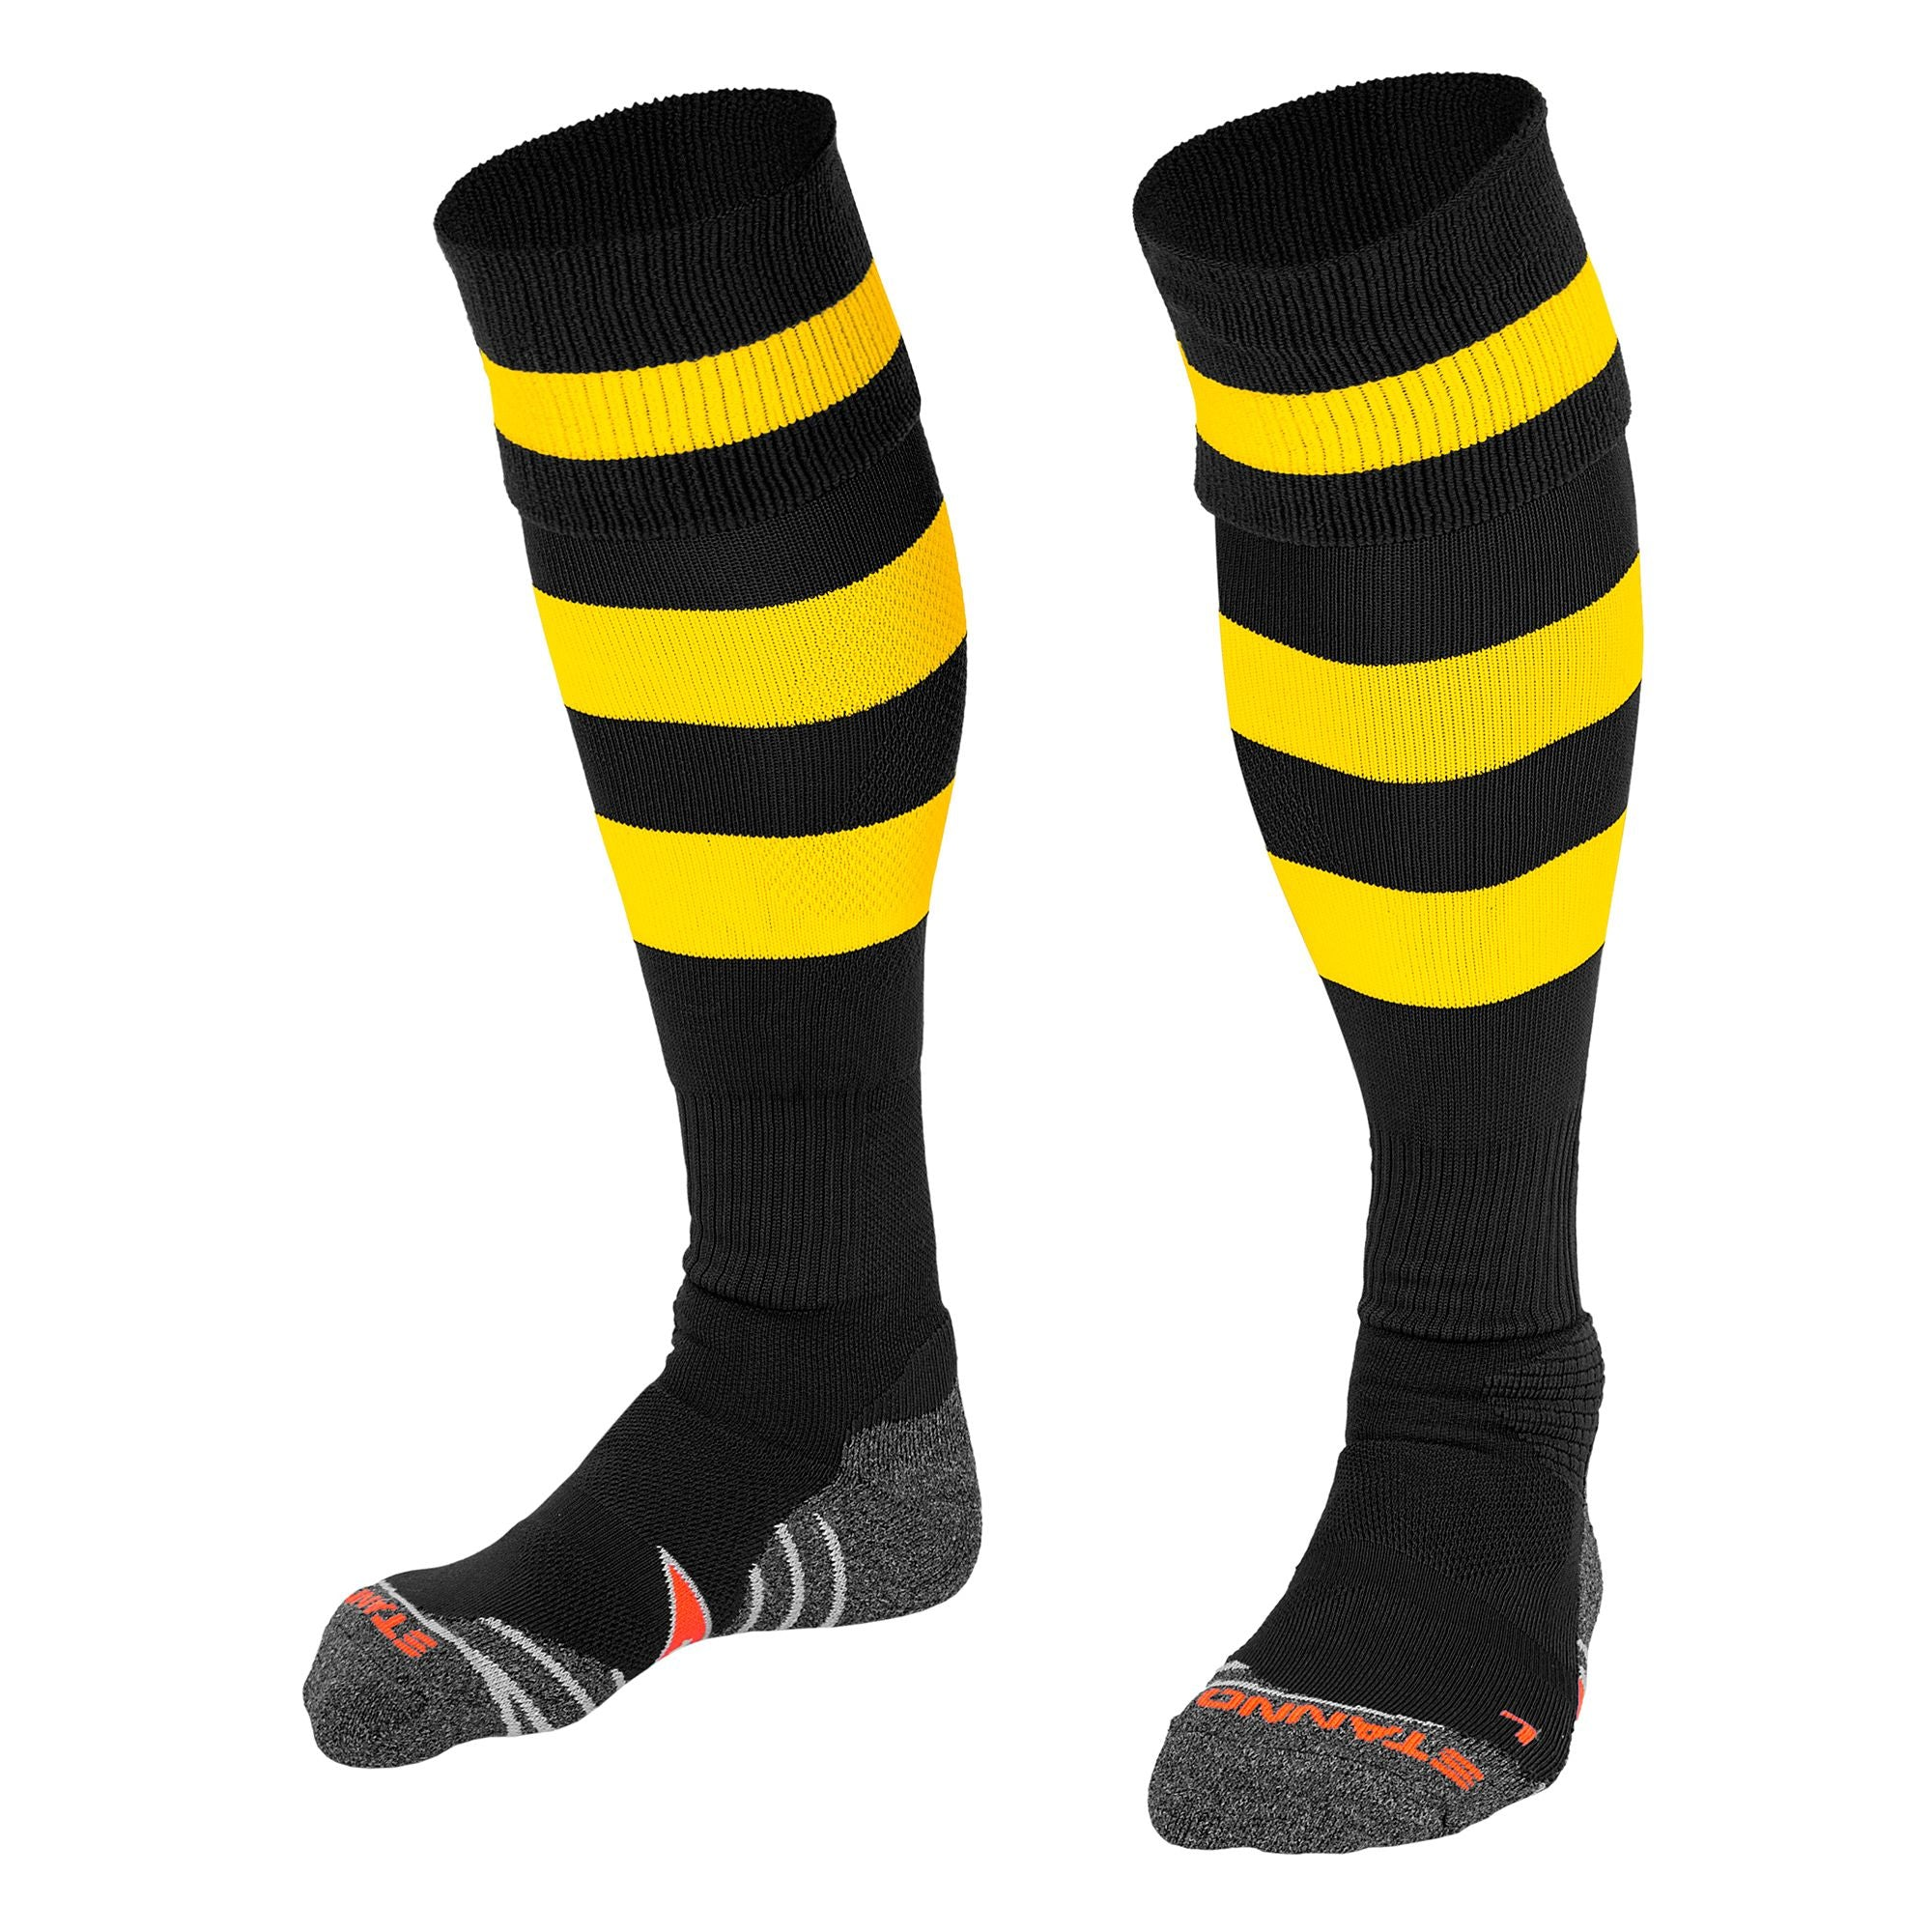 Stanno Original sock in black with 2 thick horizontal yellow stripes through the centre of the sock and one on the turnover. d